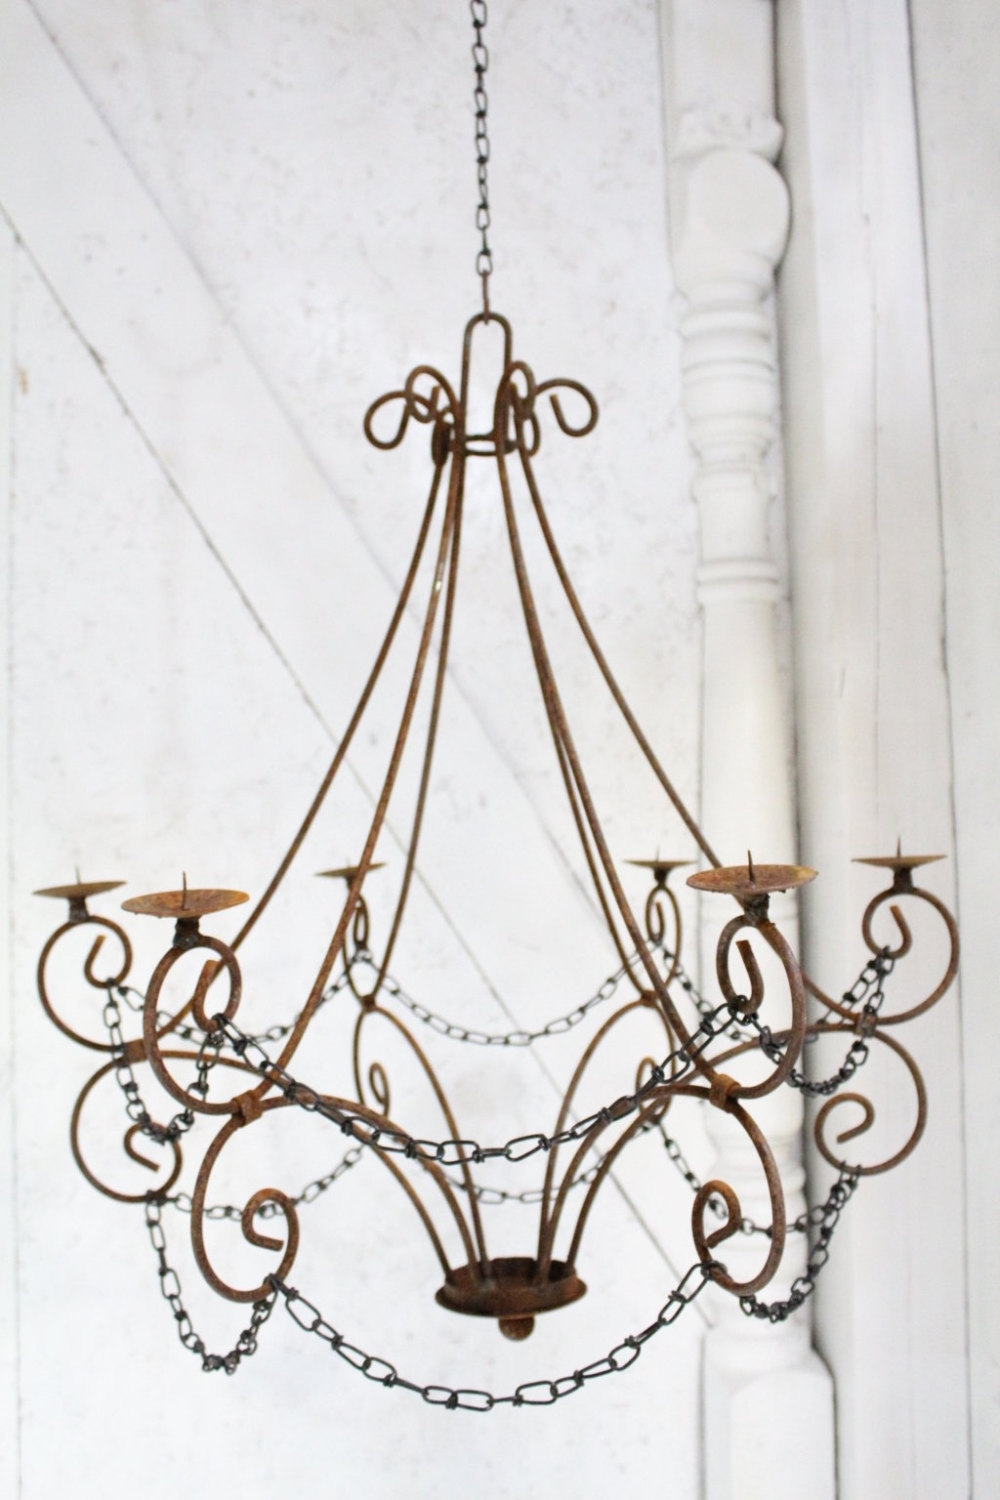 Hanging Candle Chandeliers With Well Known Hanging Candle Chandeliers You Can Or Diy Agreeable Chandelier Bulbs (View 17 of 20)